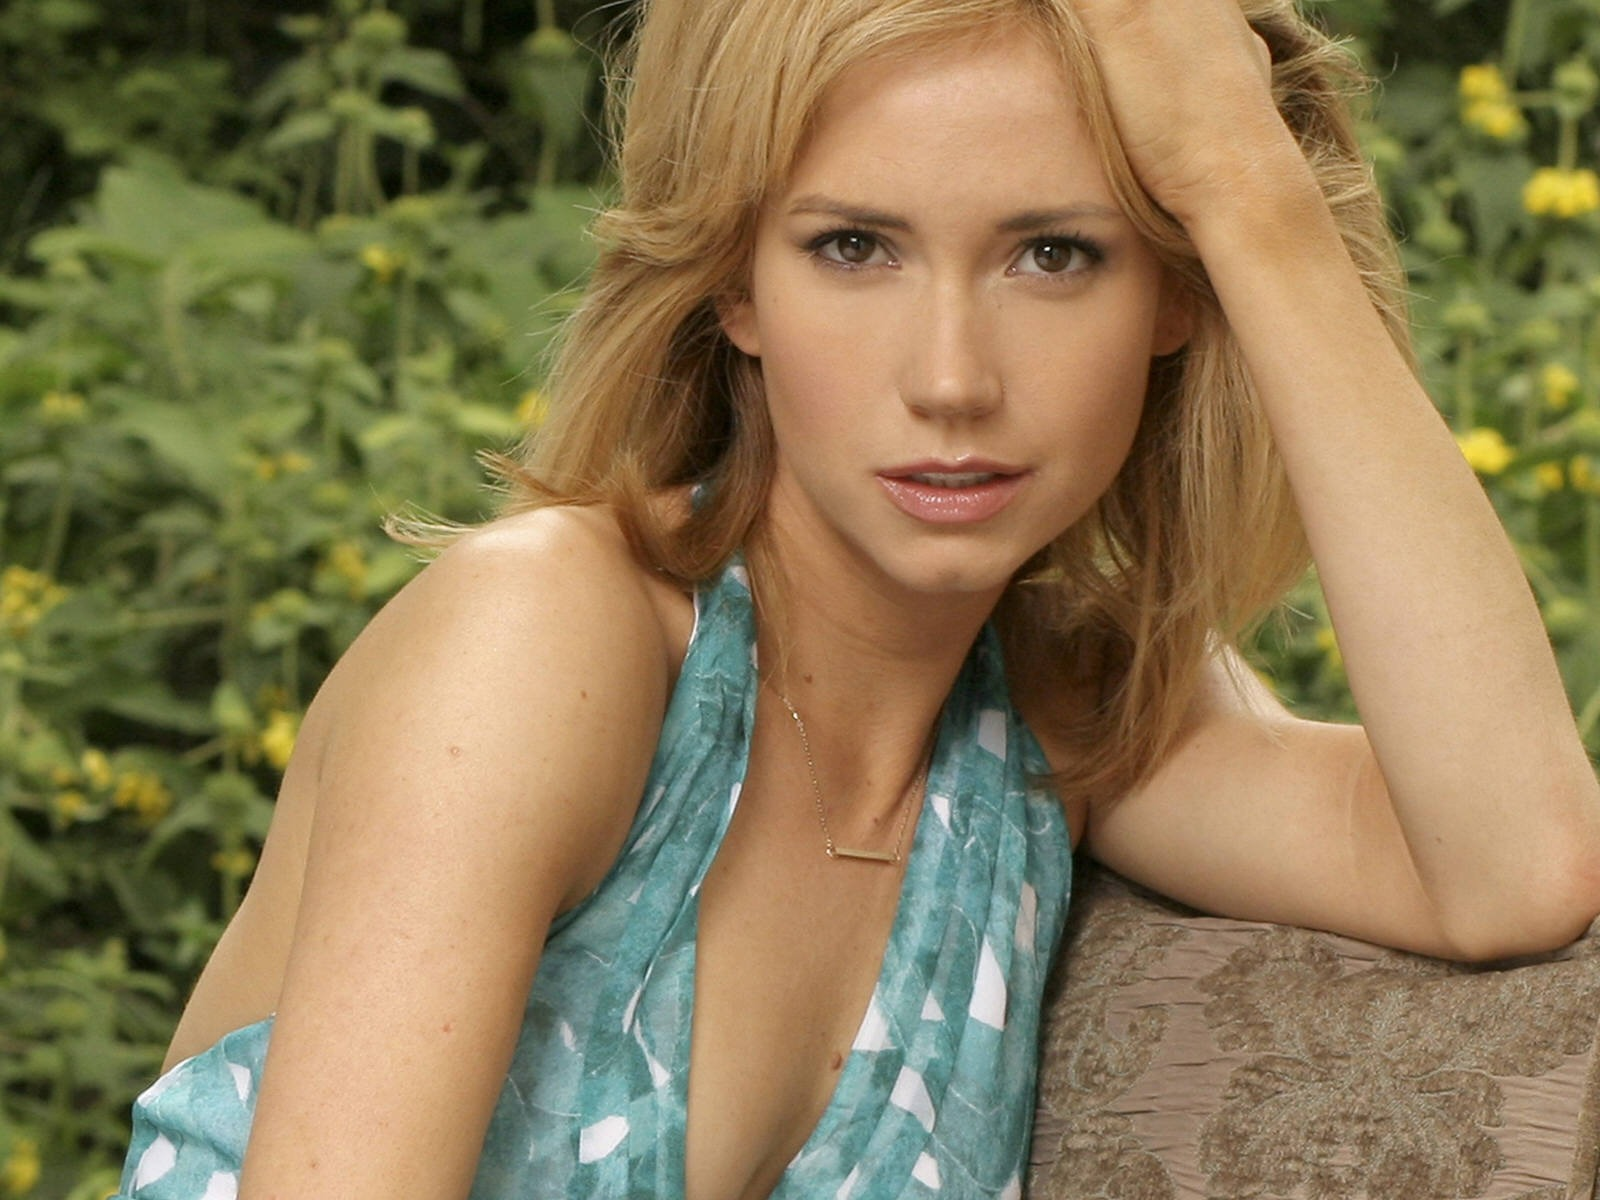 Ashley Jones #006 - 1600x1200 Wallpapers Pictures Photos Images